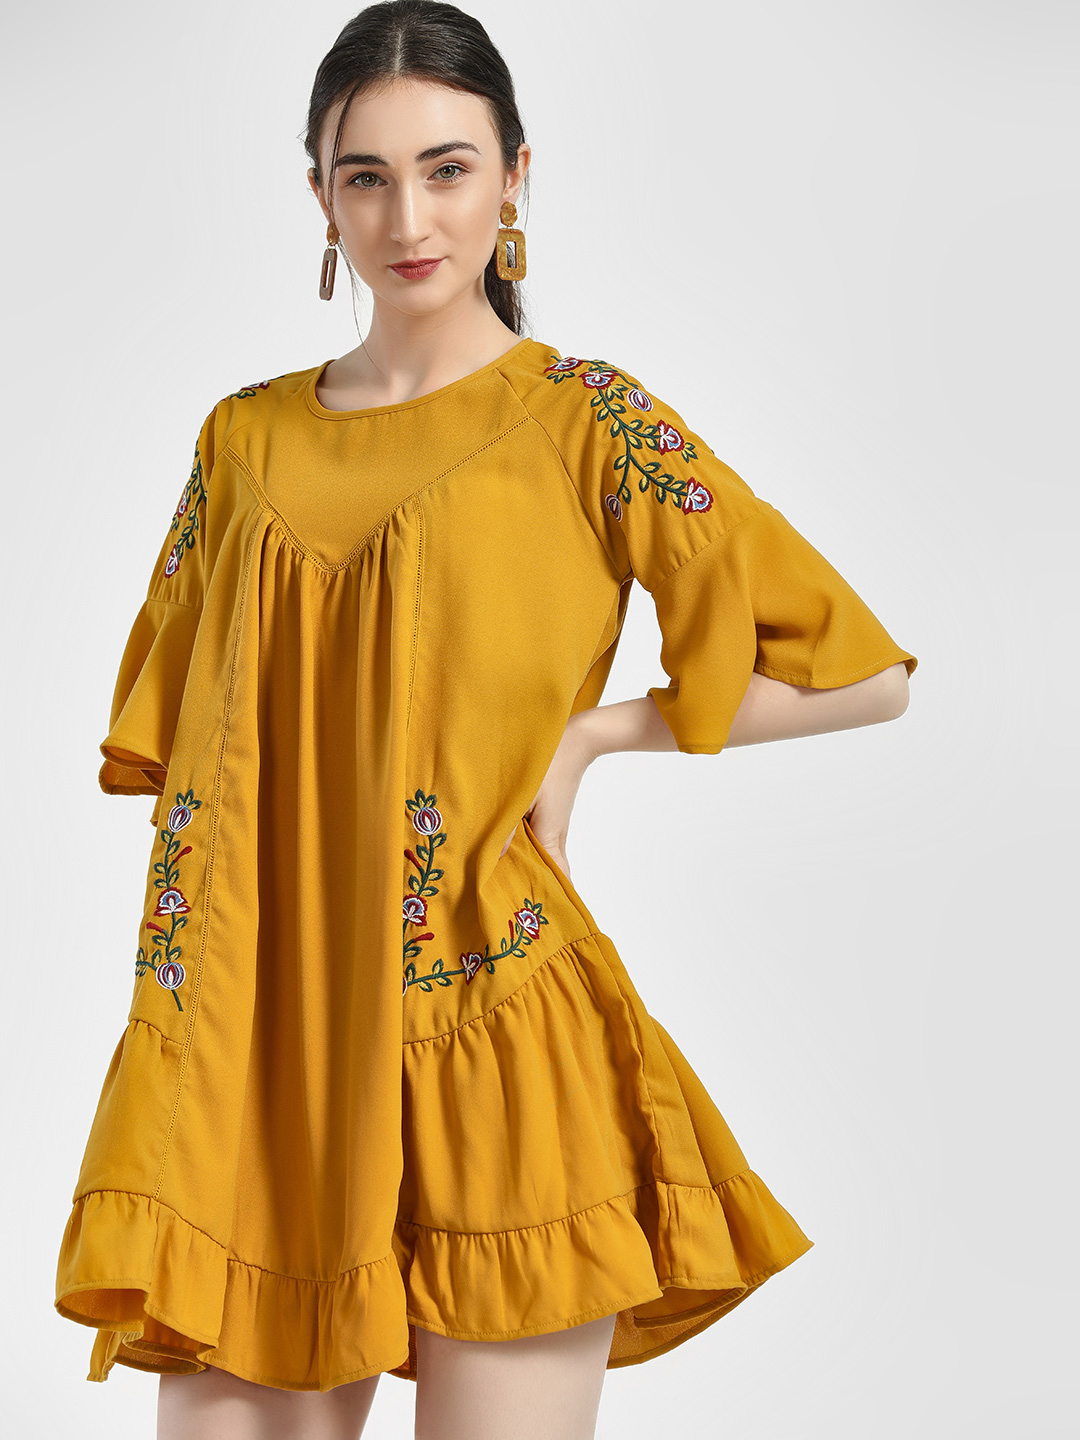 HEY Mustard Floral Embroidered Shift Dress 1